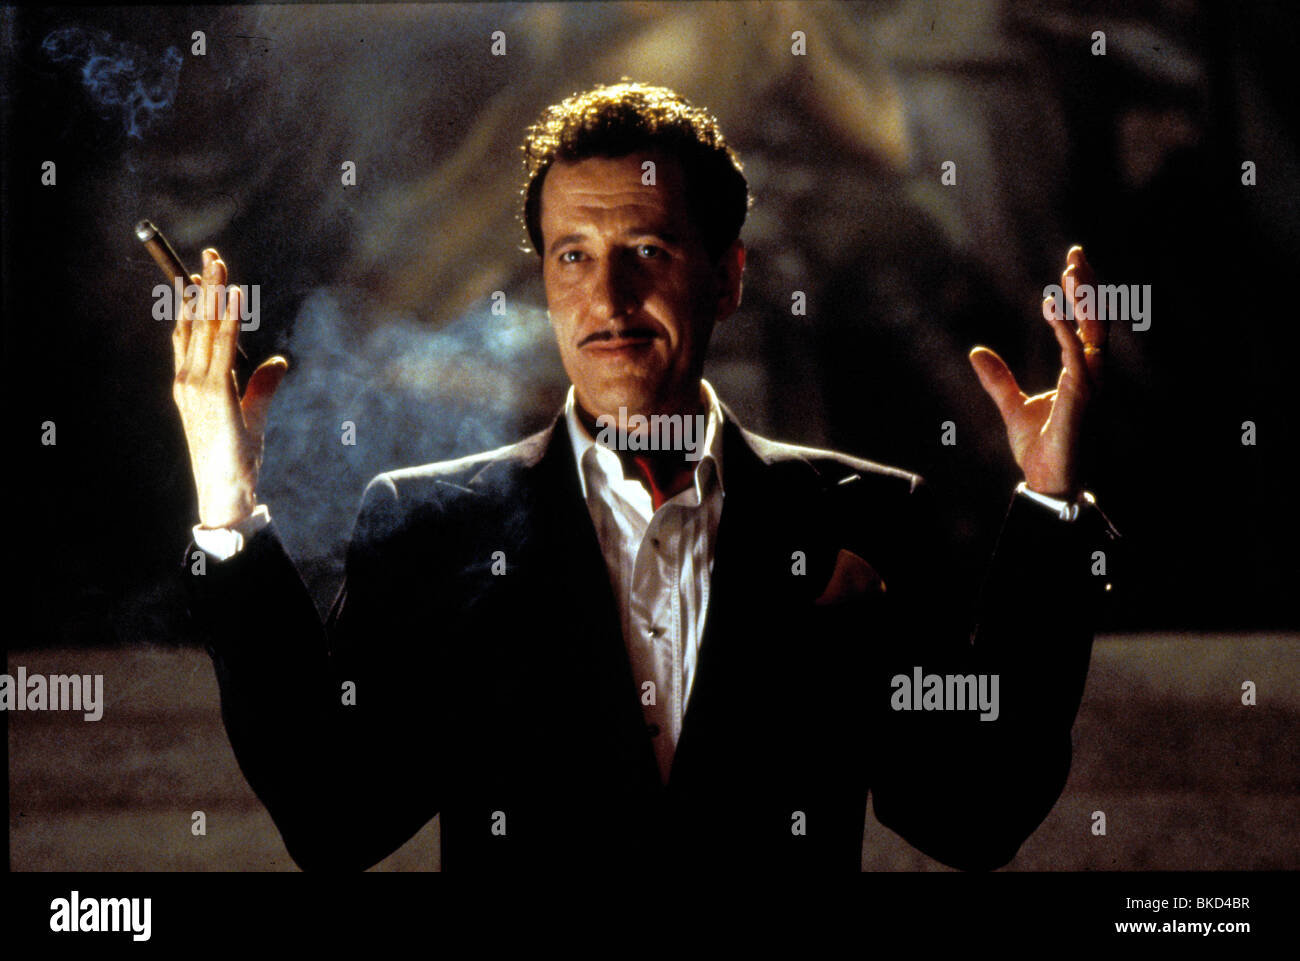 THE HOUSE ON HAUNTED HILL (1999) GEOFFREY RUSH HHI 002 - Stock Image